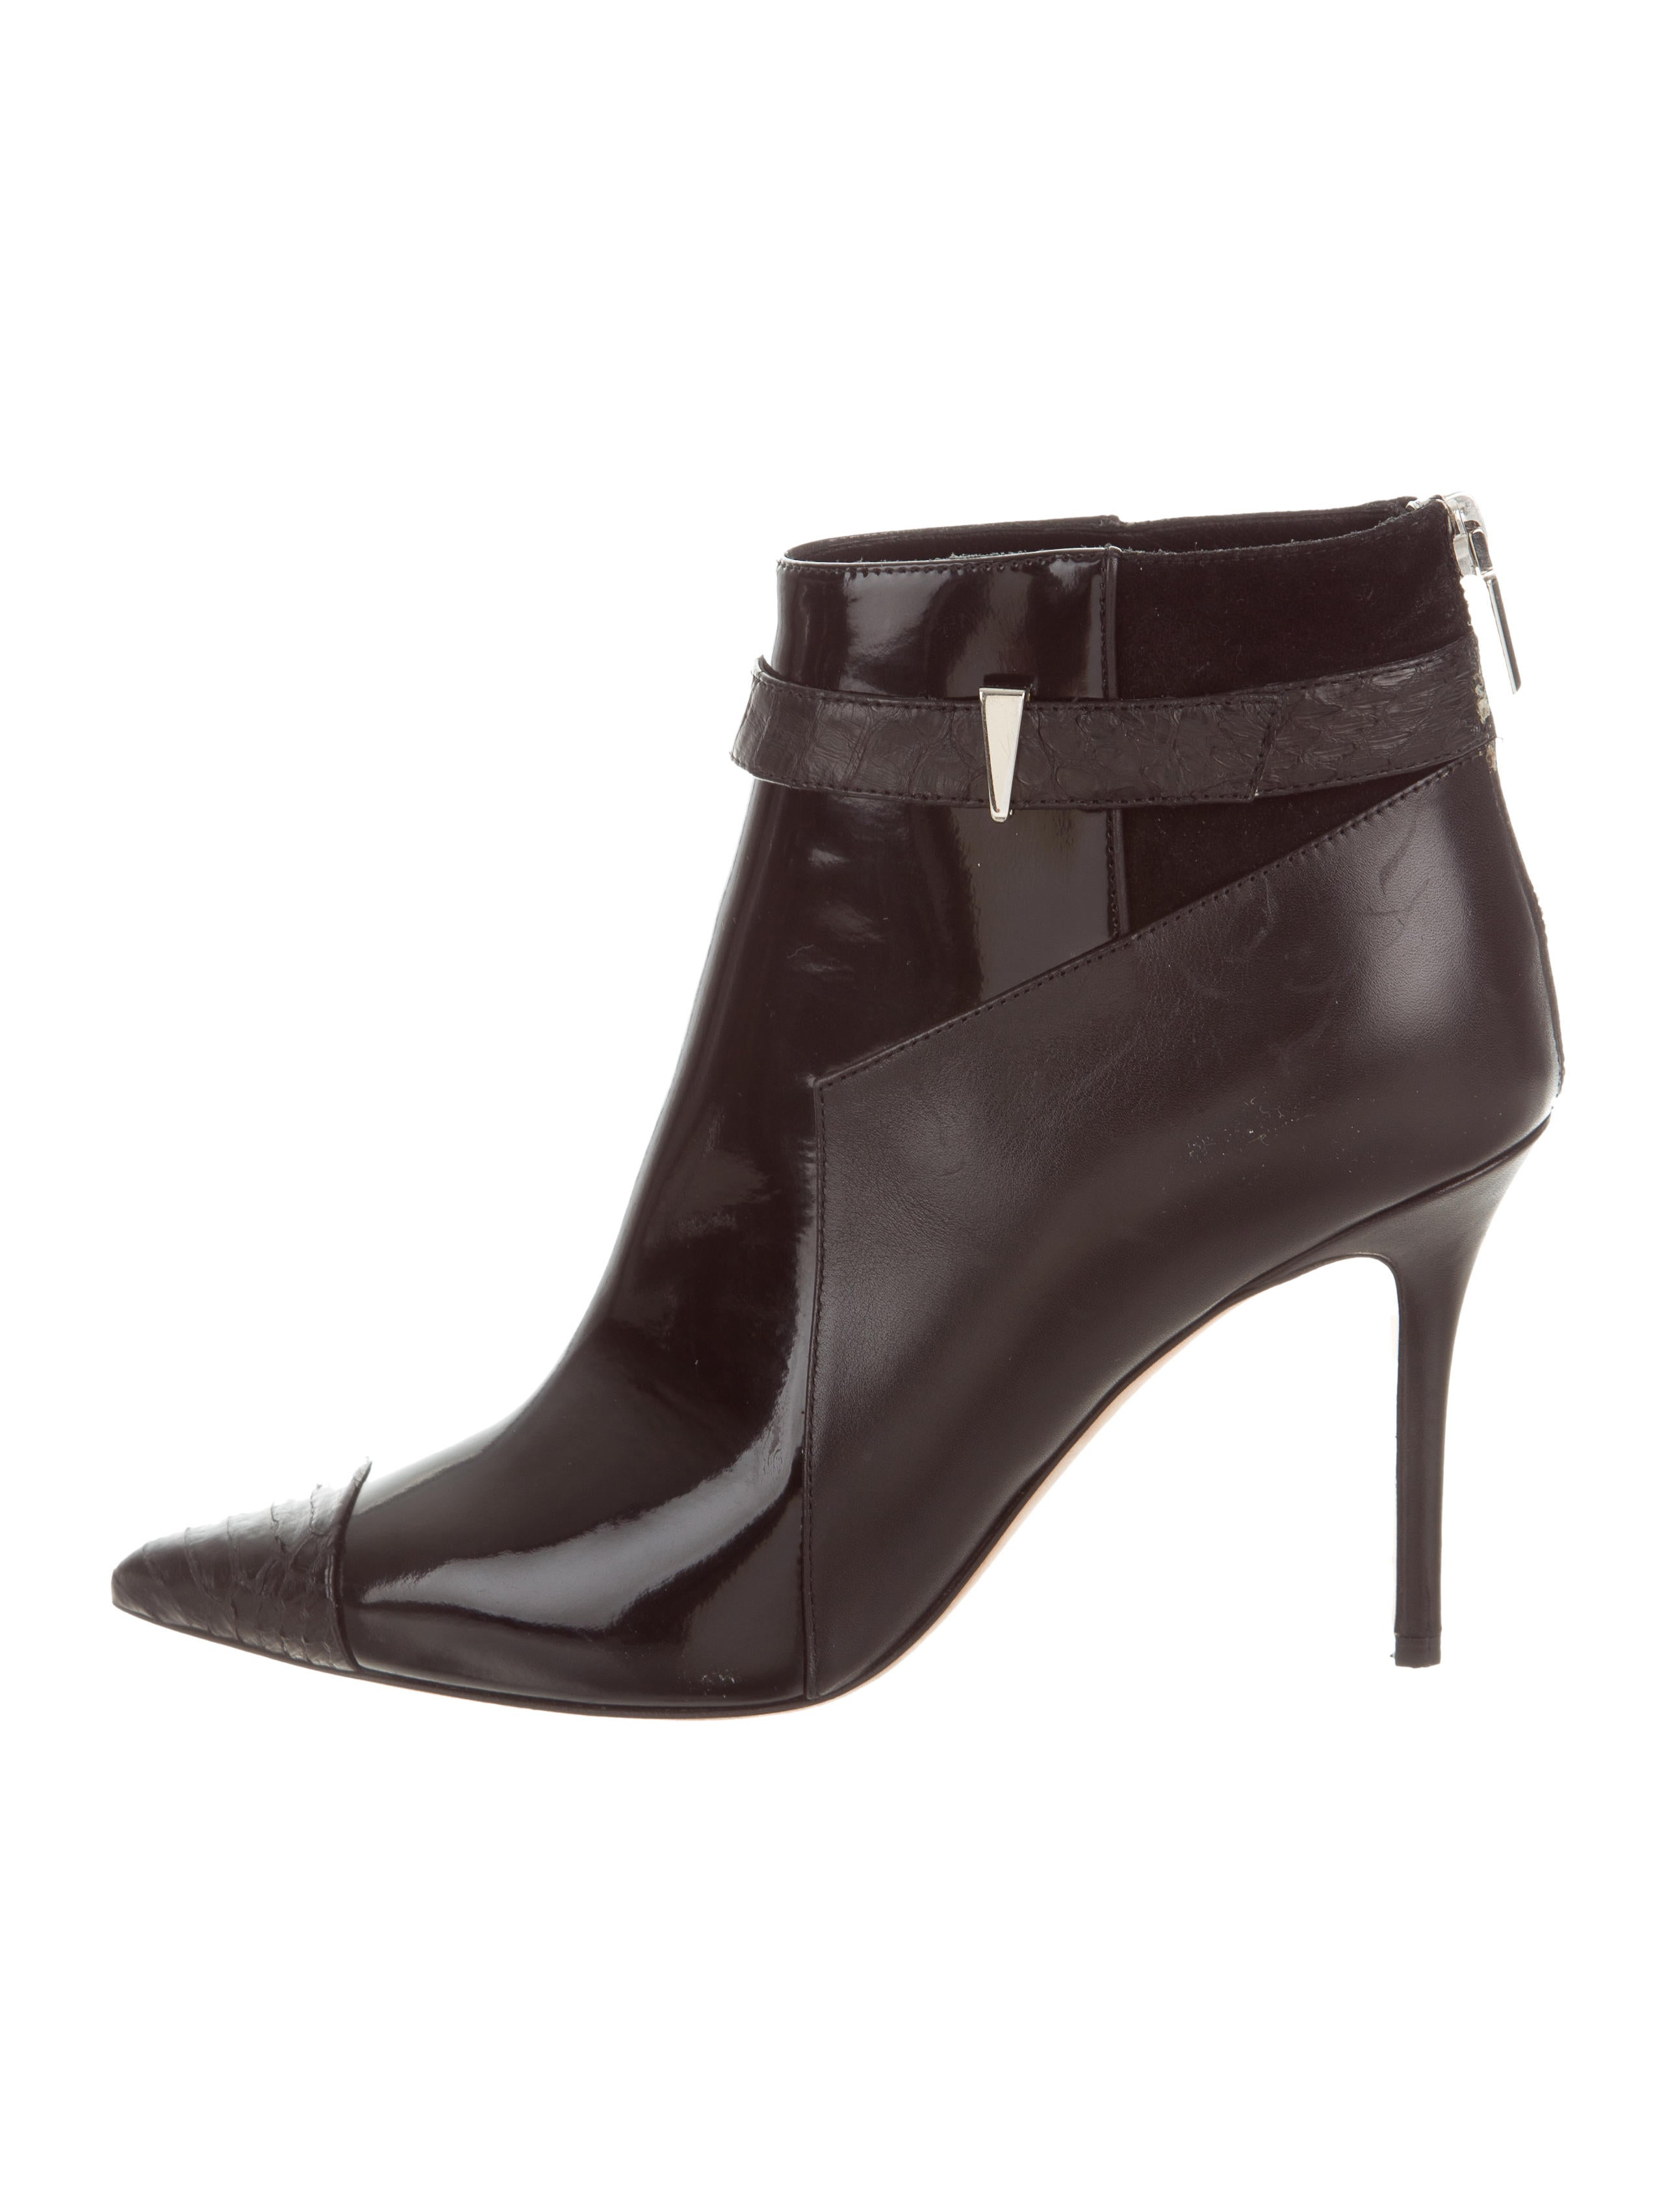 amazing price online largest supplier sale online Prabal Gurung Point-Toe Leather Ankle Boots ED7W9XKhR